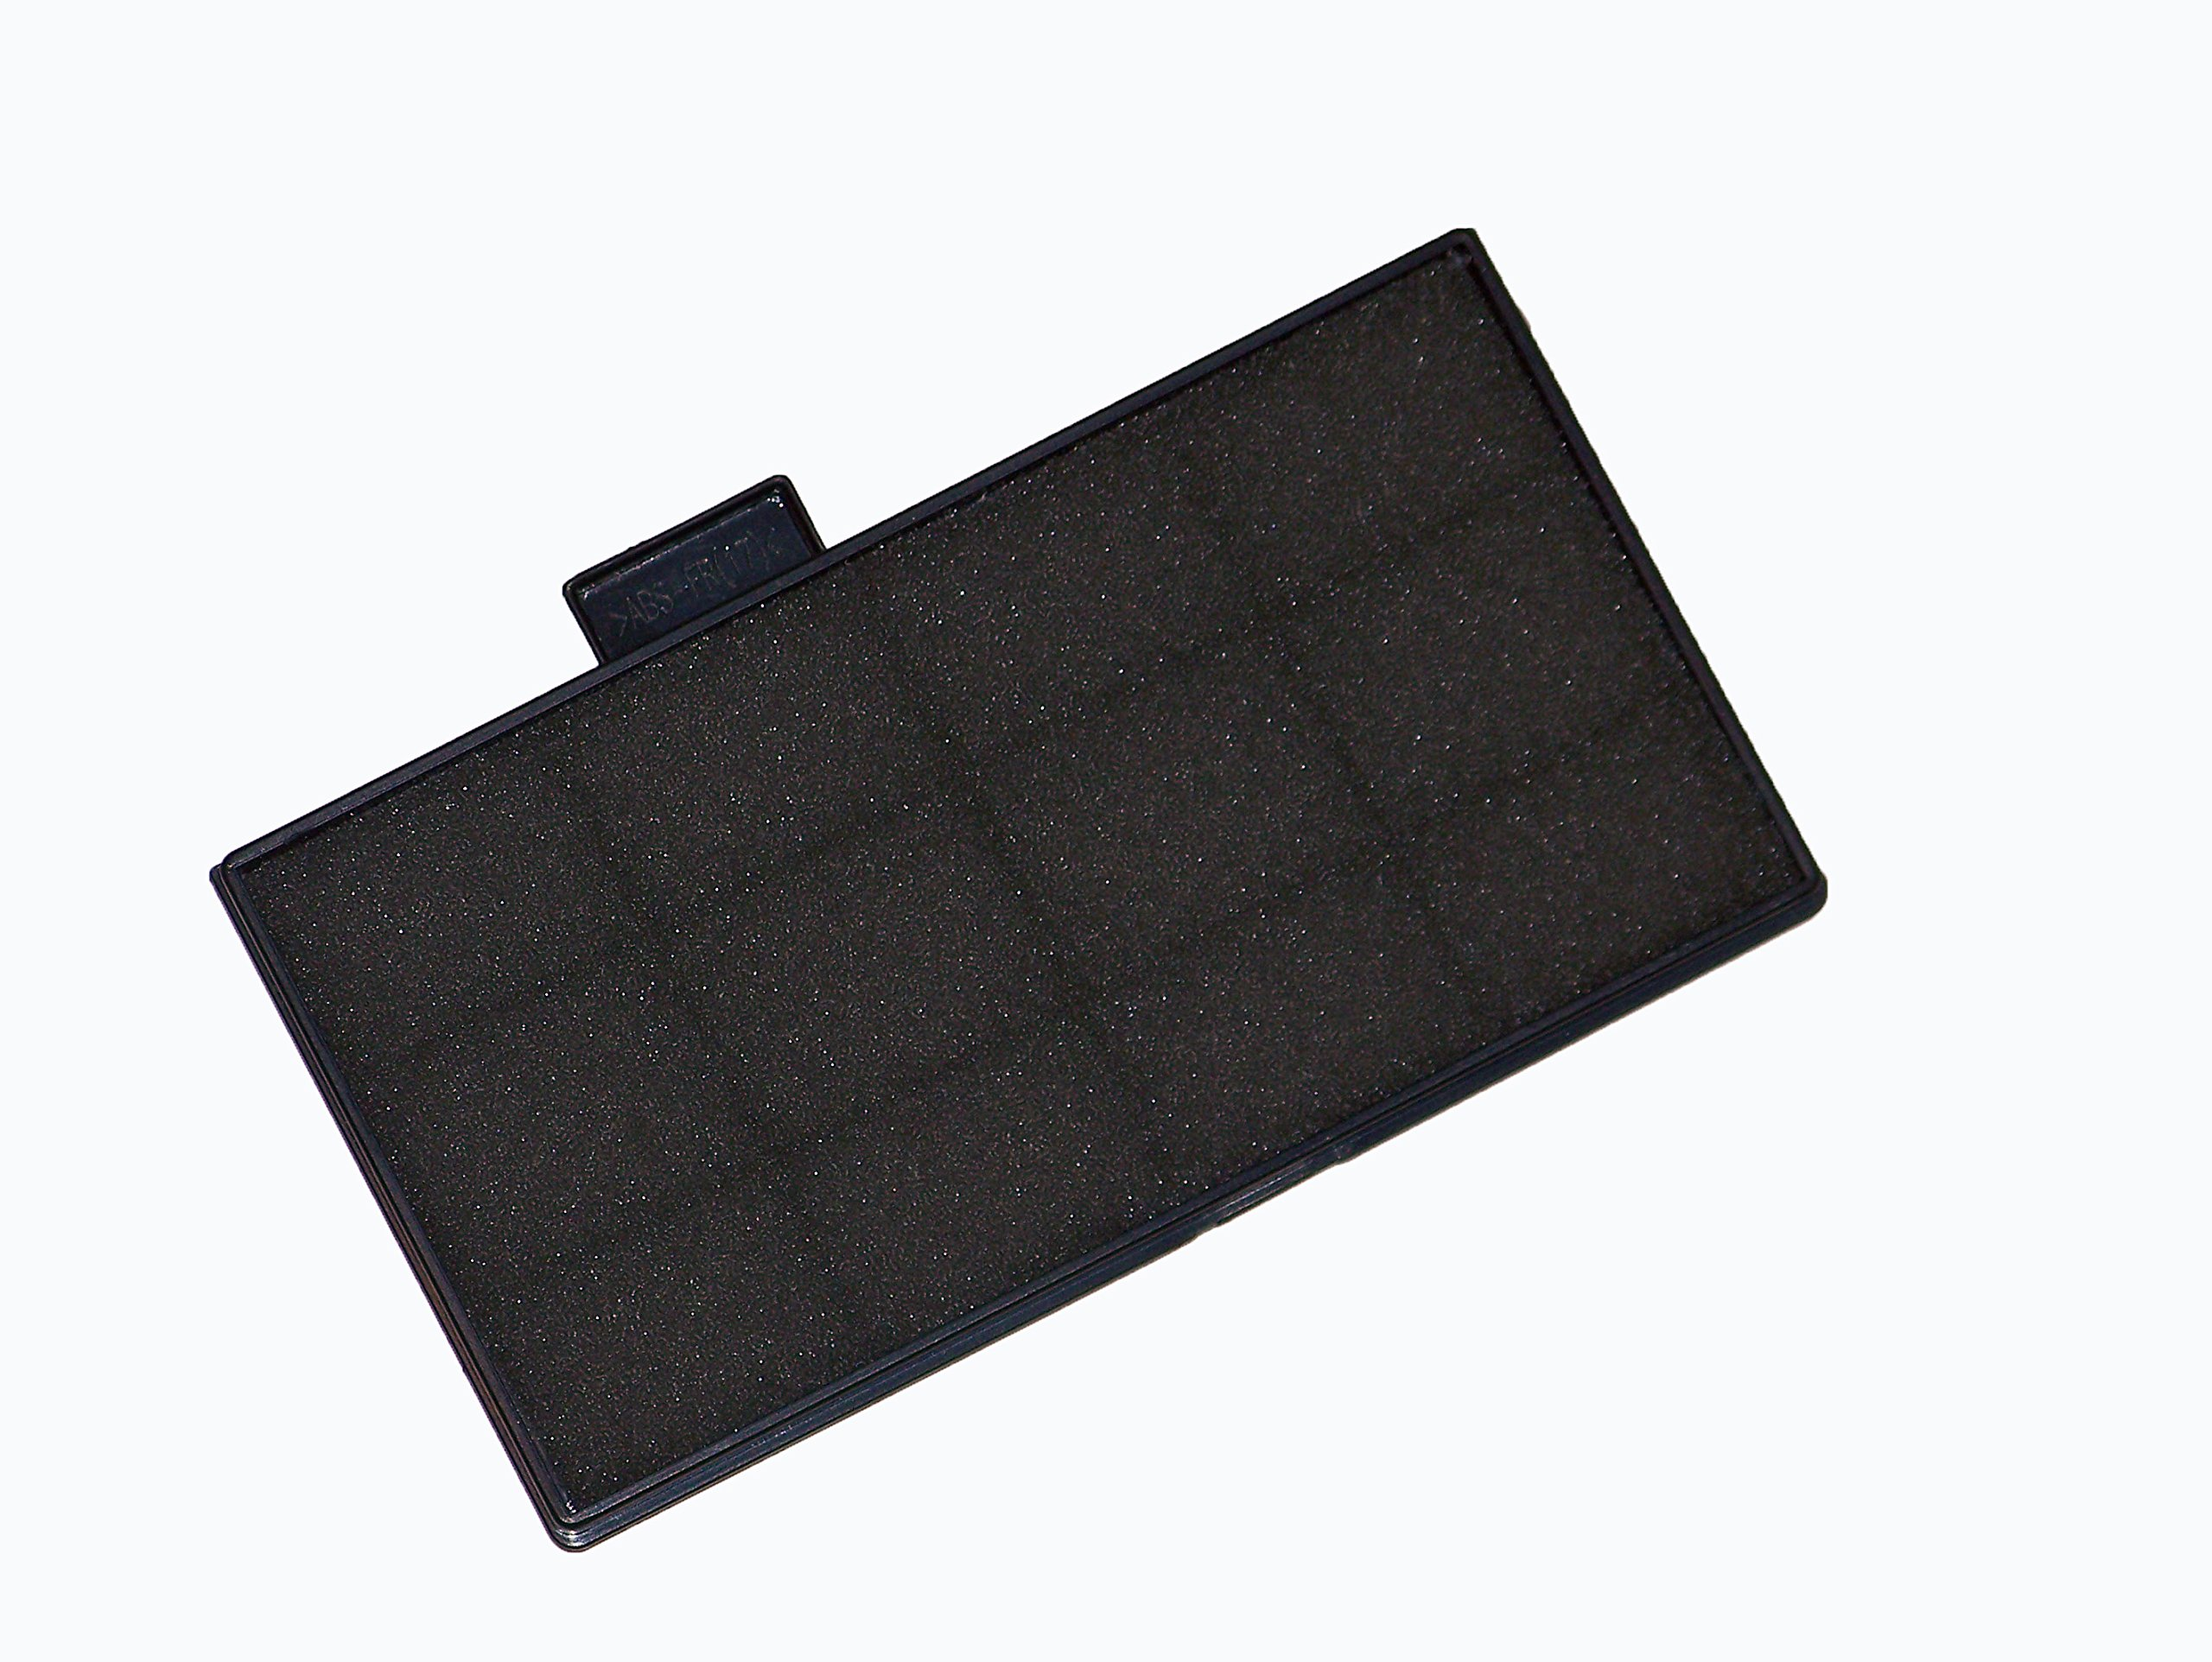 OEM Epson Projector Air Filter For Epson Home Cinema 1060, 660, 760HD